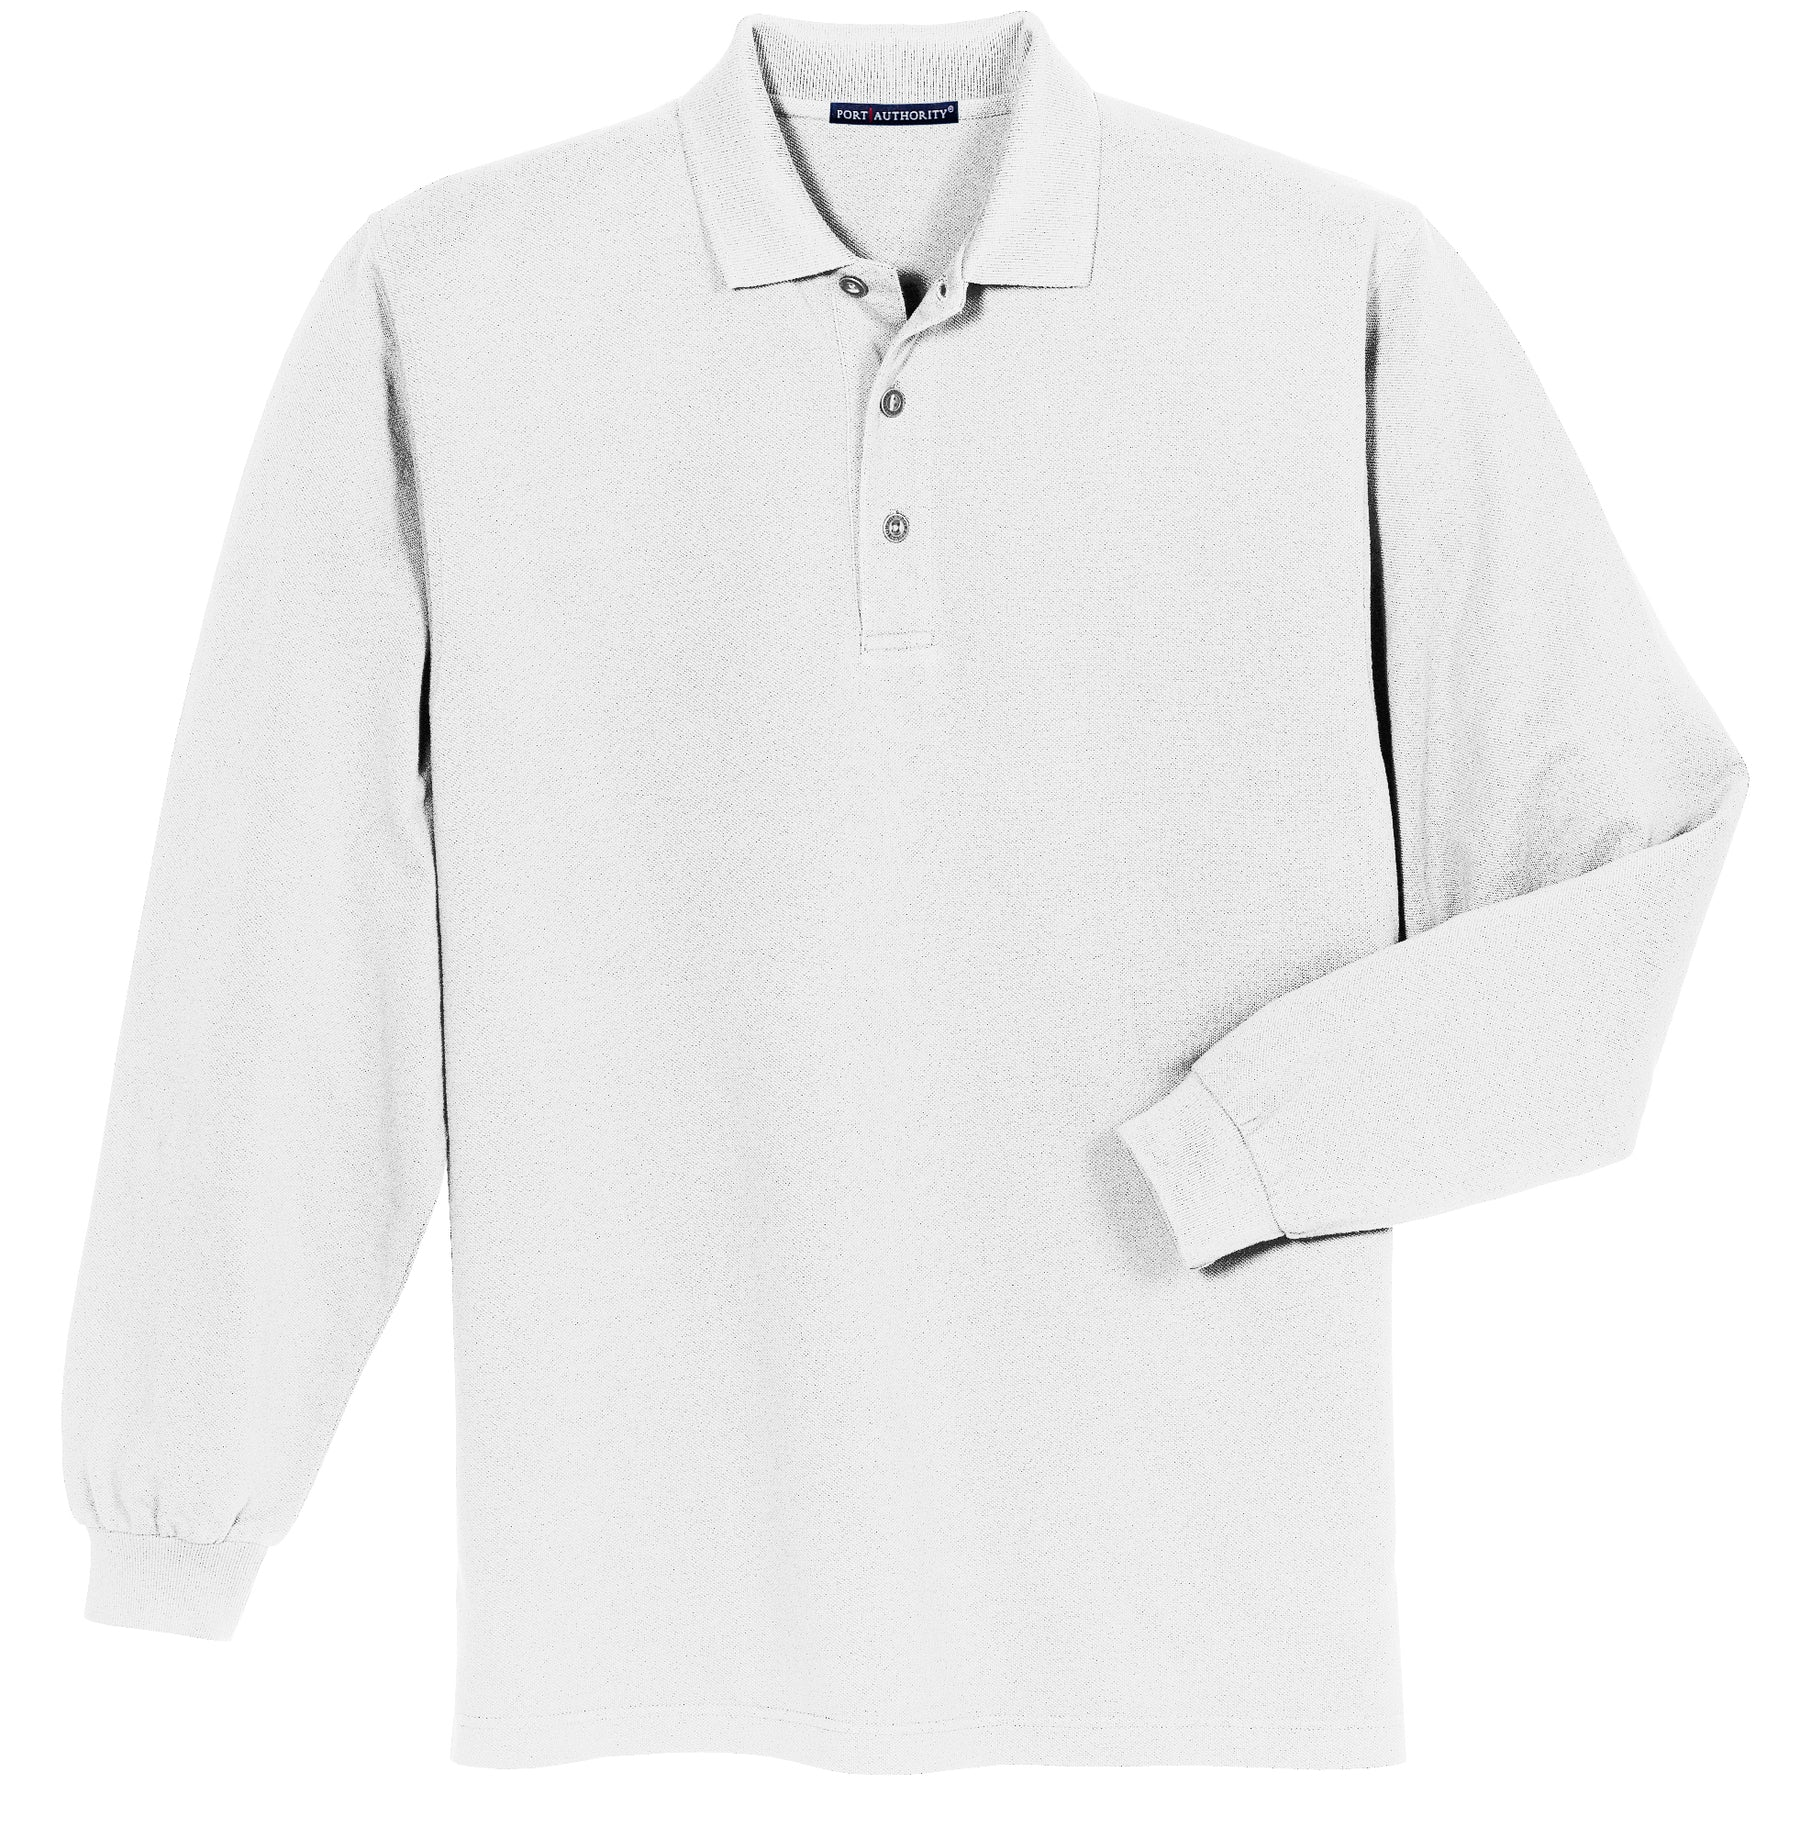 1ad3fc507652 Men s Long Sleeve Heavyweight Cotton Pique Polo – The Stitching Loft